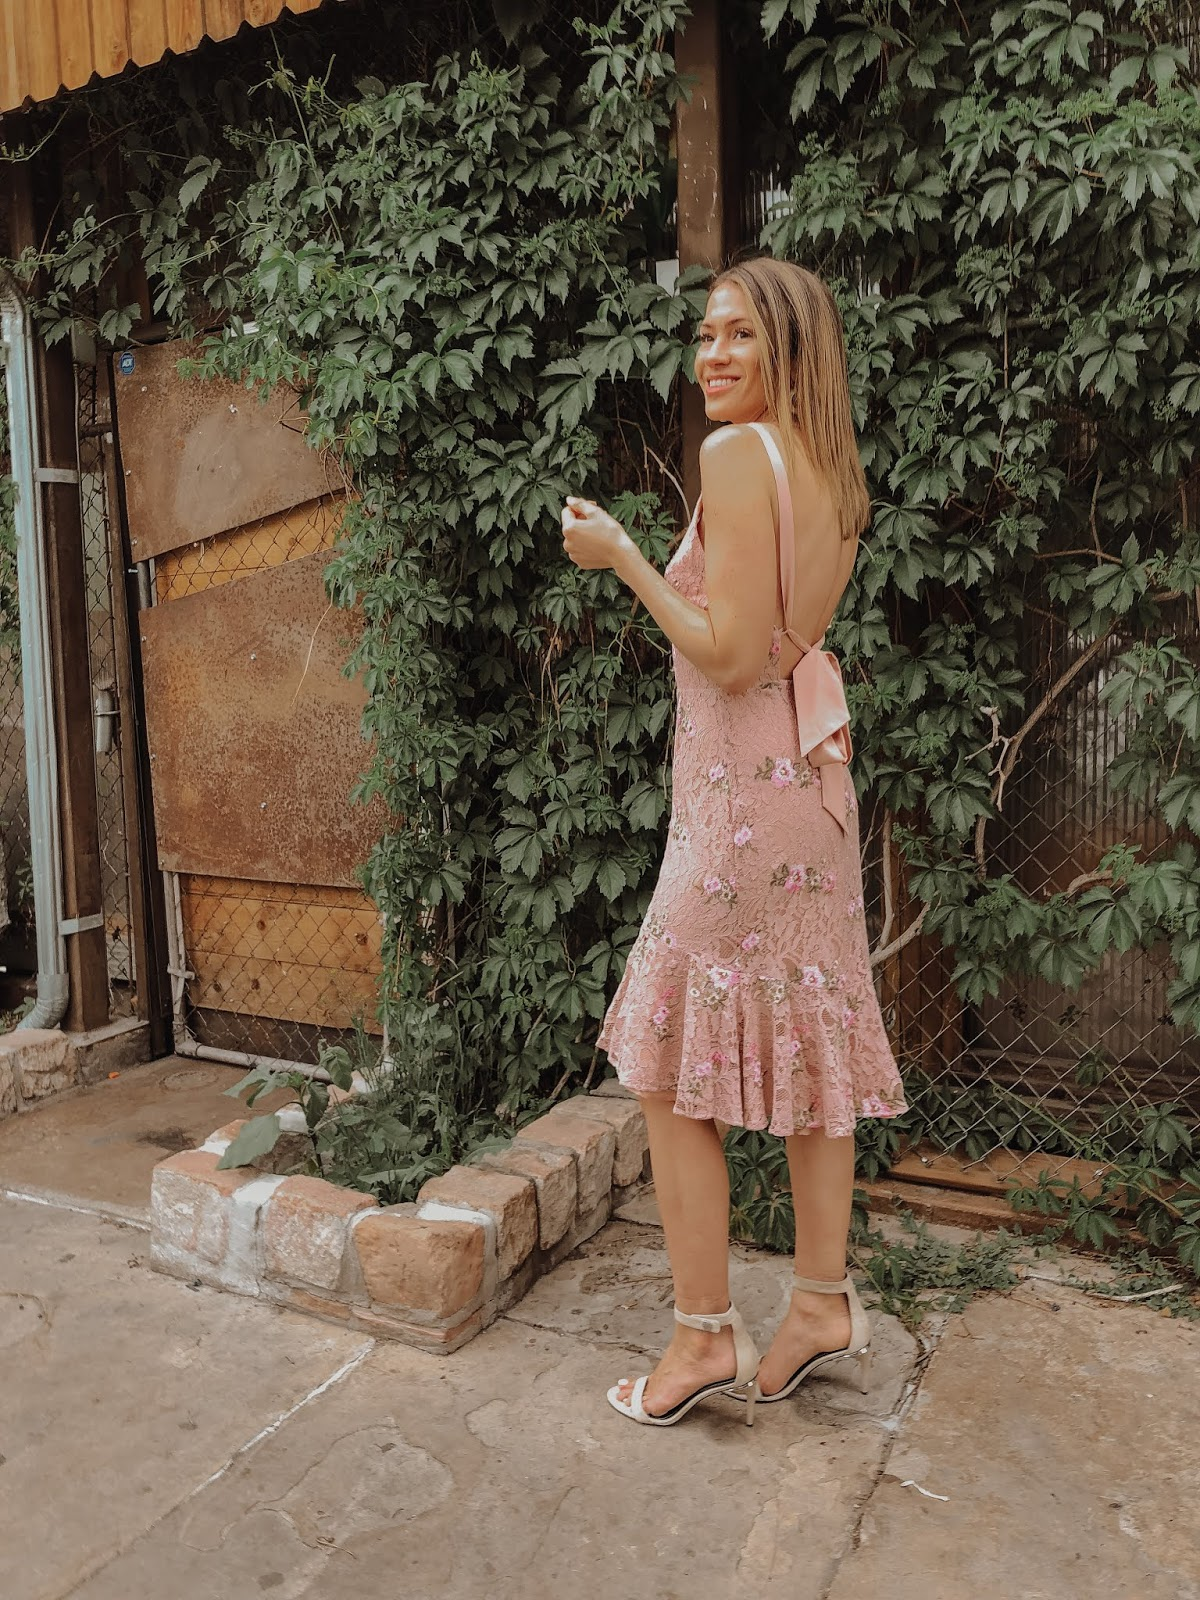 One of the Most Beautiful Spring Wedding Guest Dresses styled by popular Colorado fashion blogger, Leah Behr